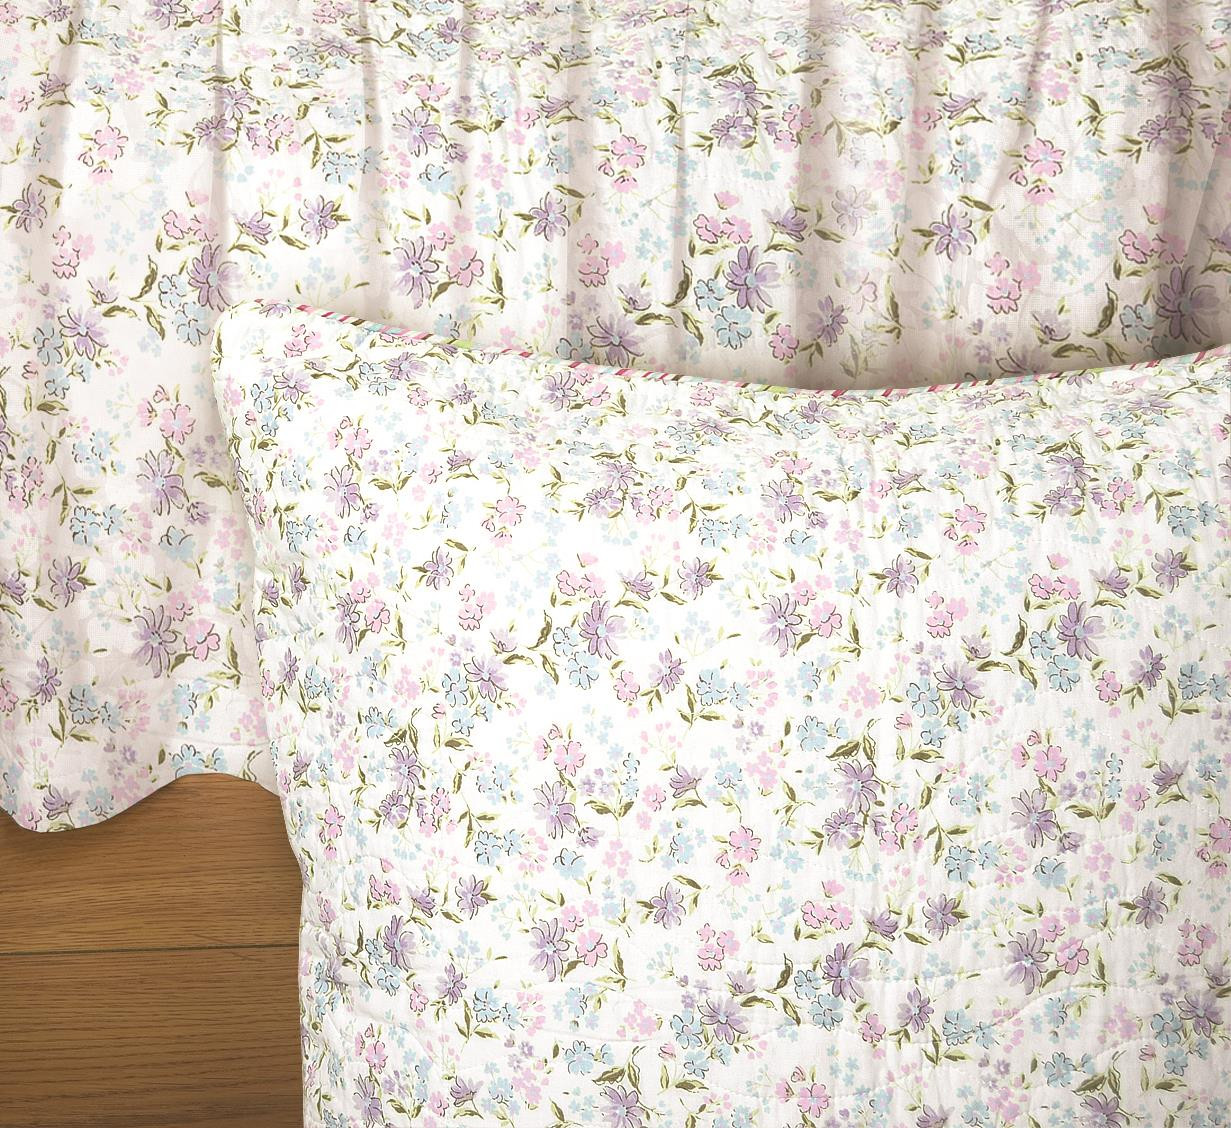 Lily Floral Bed Skirt - 754069825950